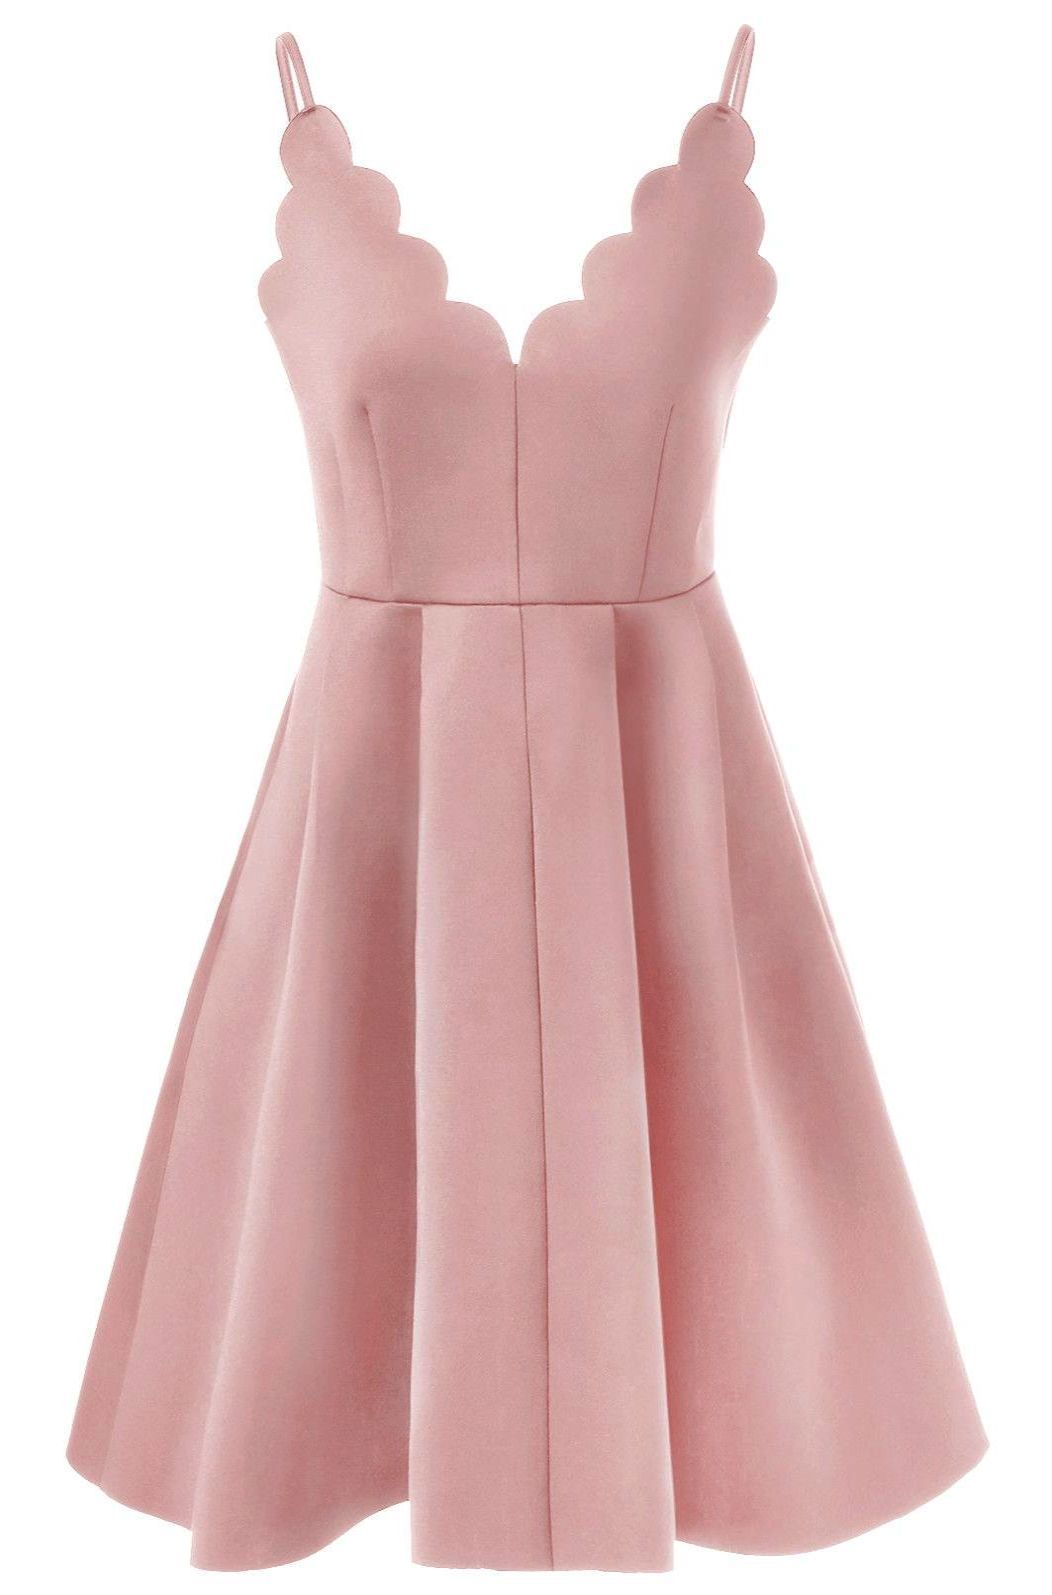 Ball gown dresses near me homecoming dress types homecoming